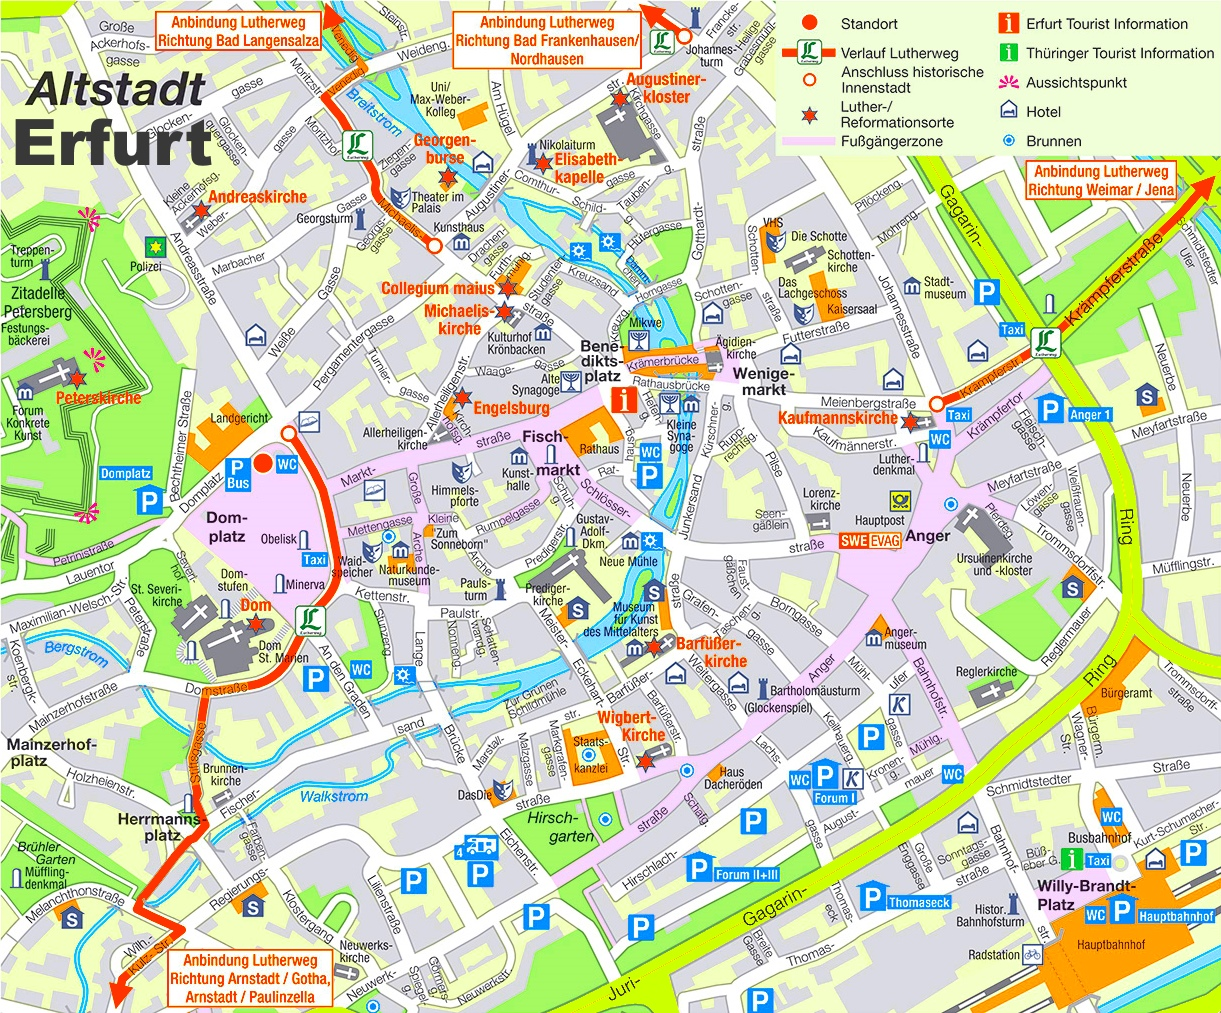 The Anger Saxony, Saxony-Anhalt and Thuringia, Erfurt city center map